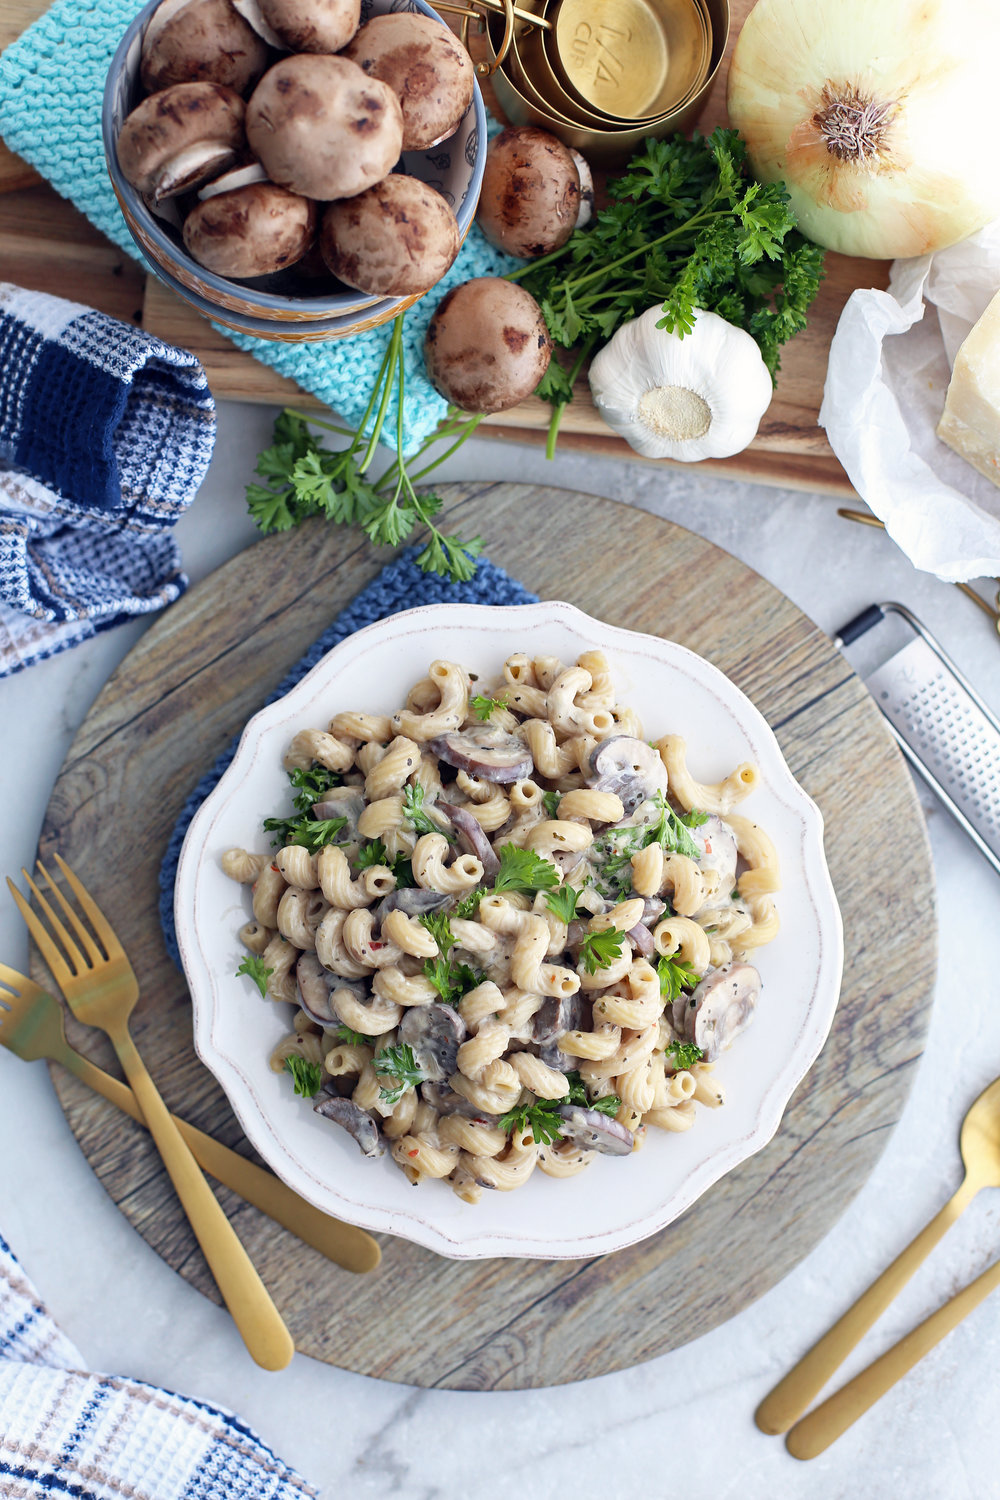 Overhead view of a white bowl containing mushroom pasta with creamy parmesan sauce.